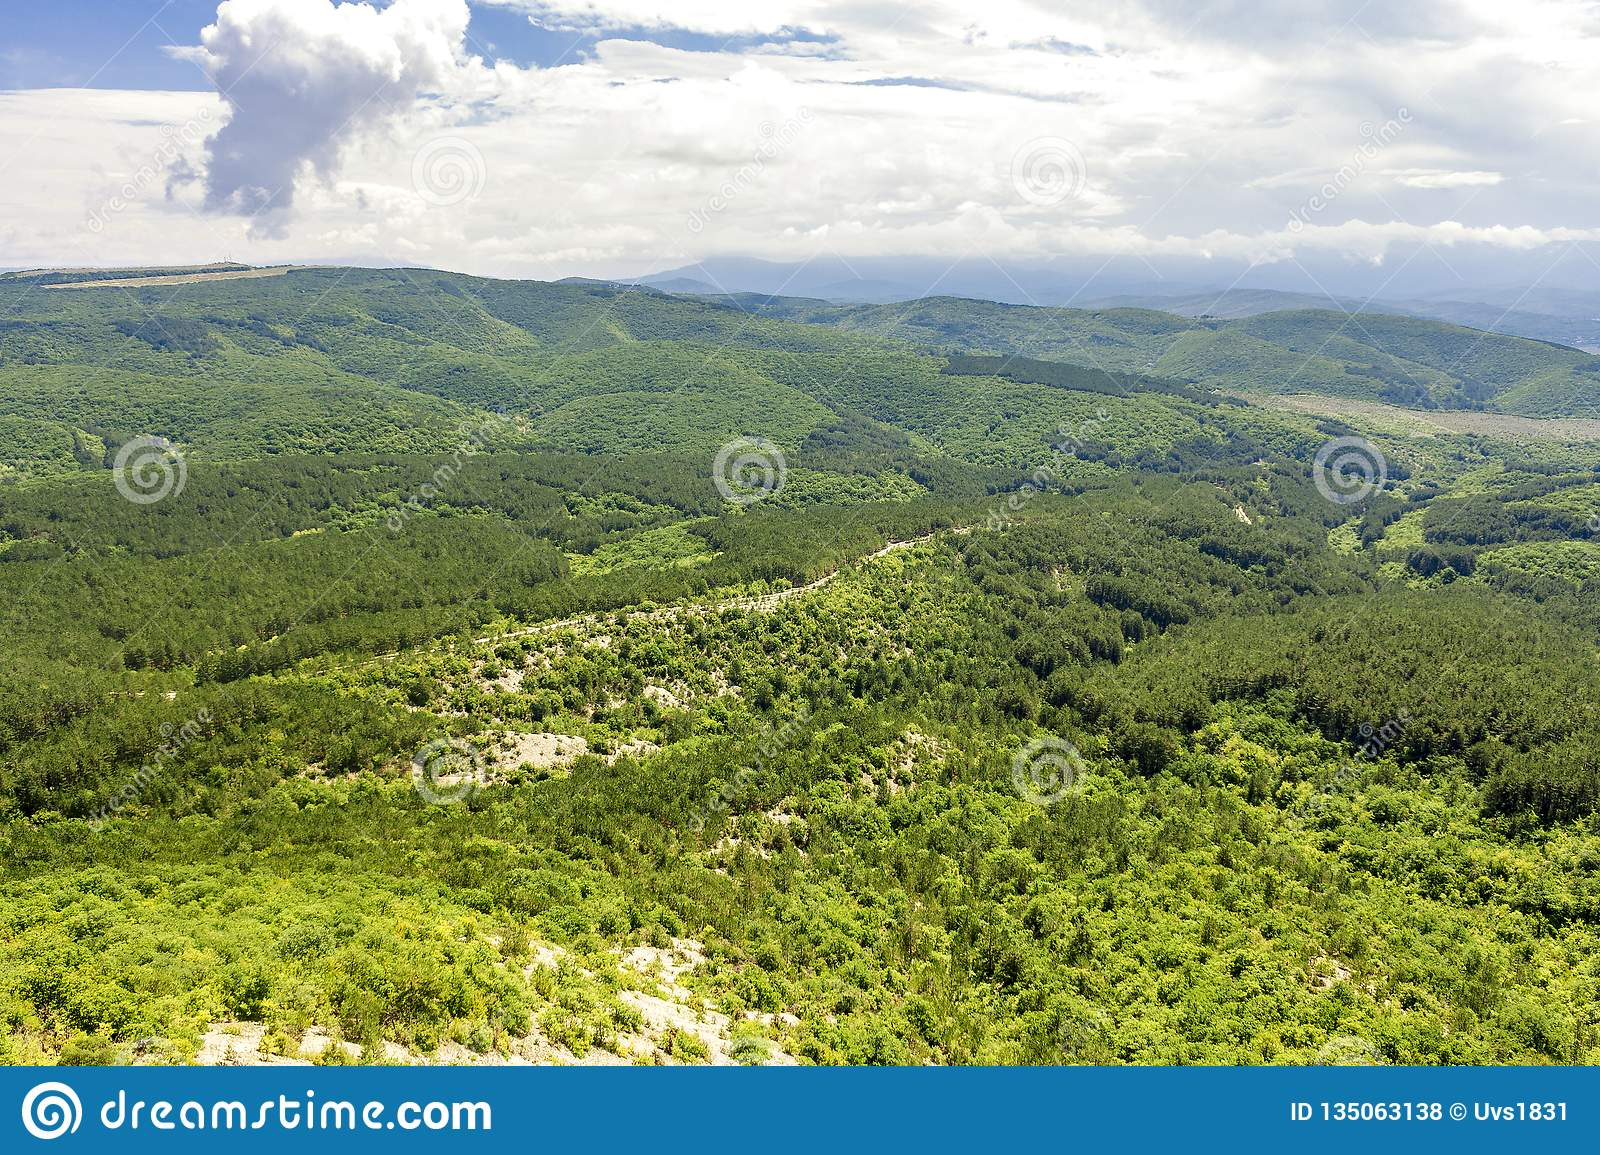 Picturesque hilly valley overgrown with dense forest and shrubs, with a country road passing through it. Bird`s eye view